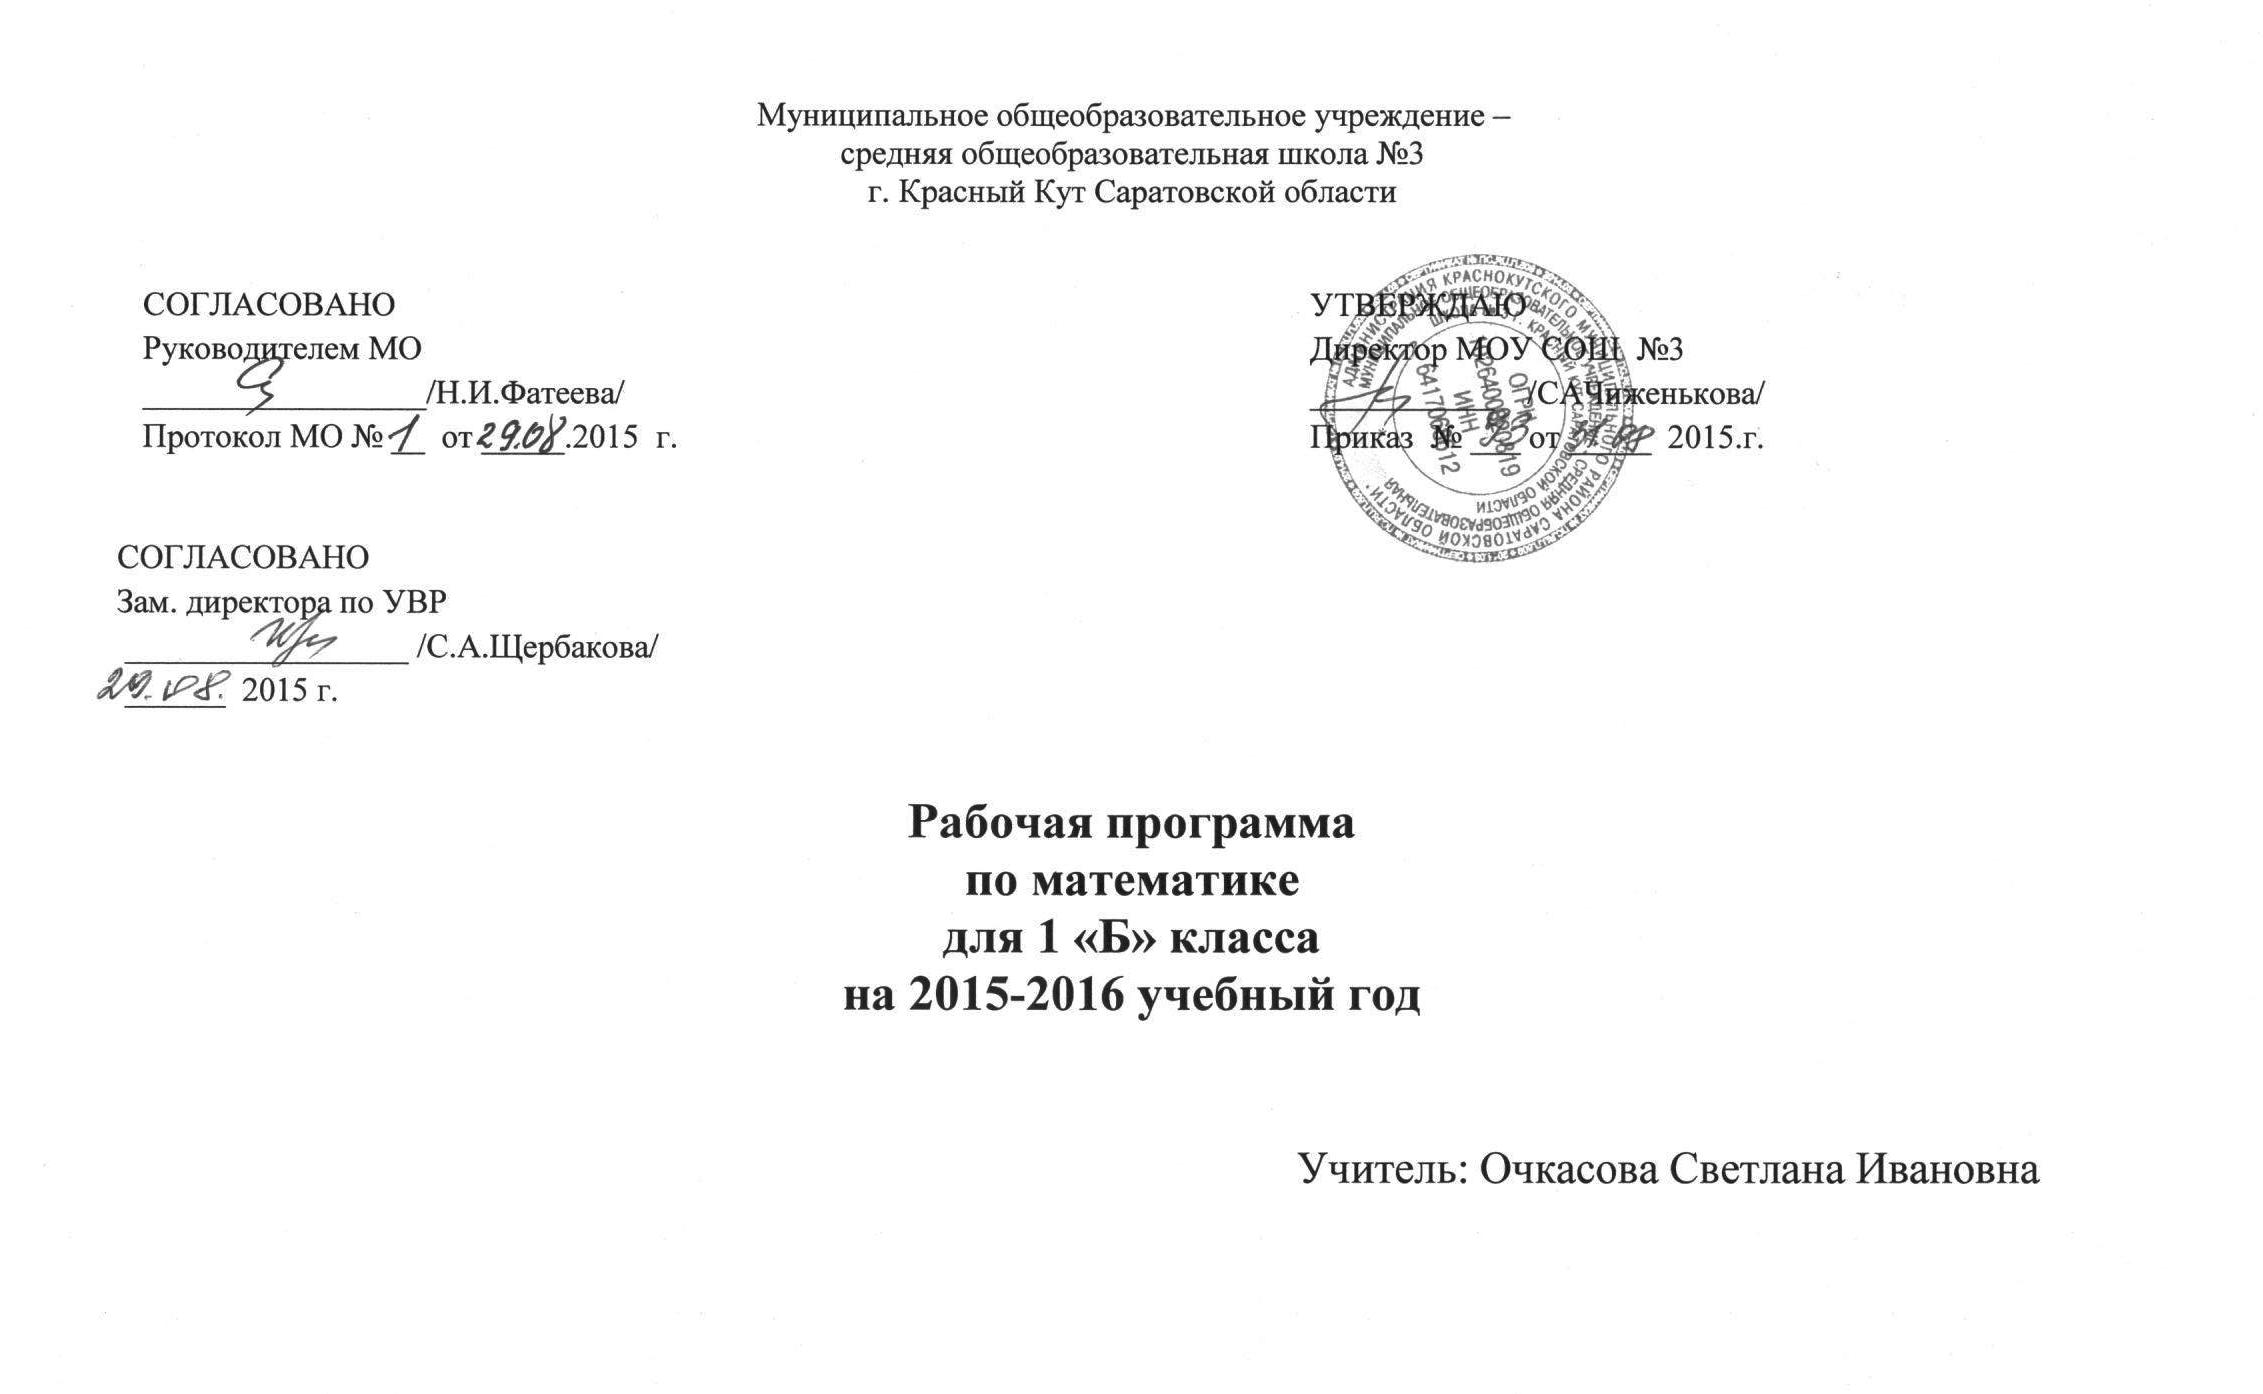 C:\Documents and Settings\Светлана Ивановна\Local Settings\Temporary Internet Files\Content.Word\м.jpg